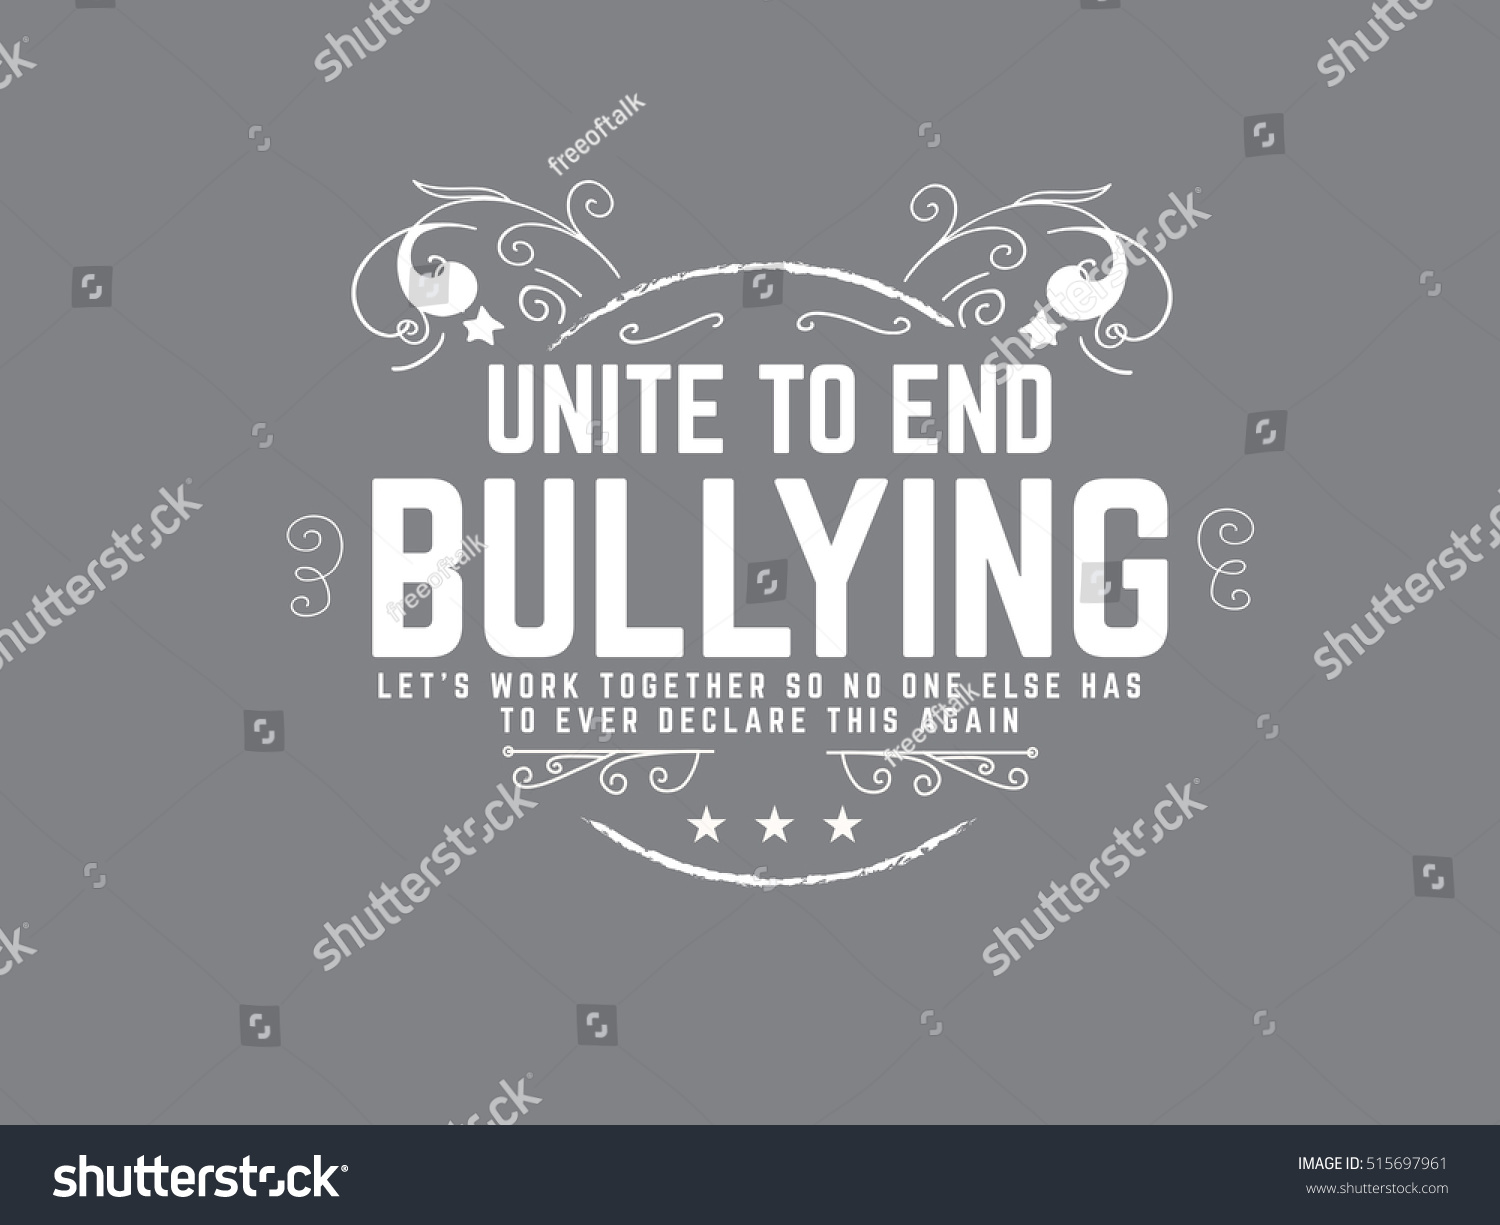 Bullying Quote Bullying Quote Stock Vector 515697961  Shutterstock